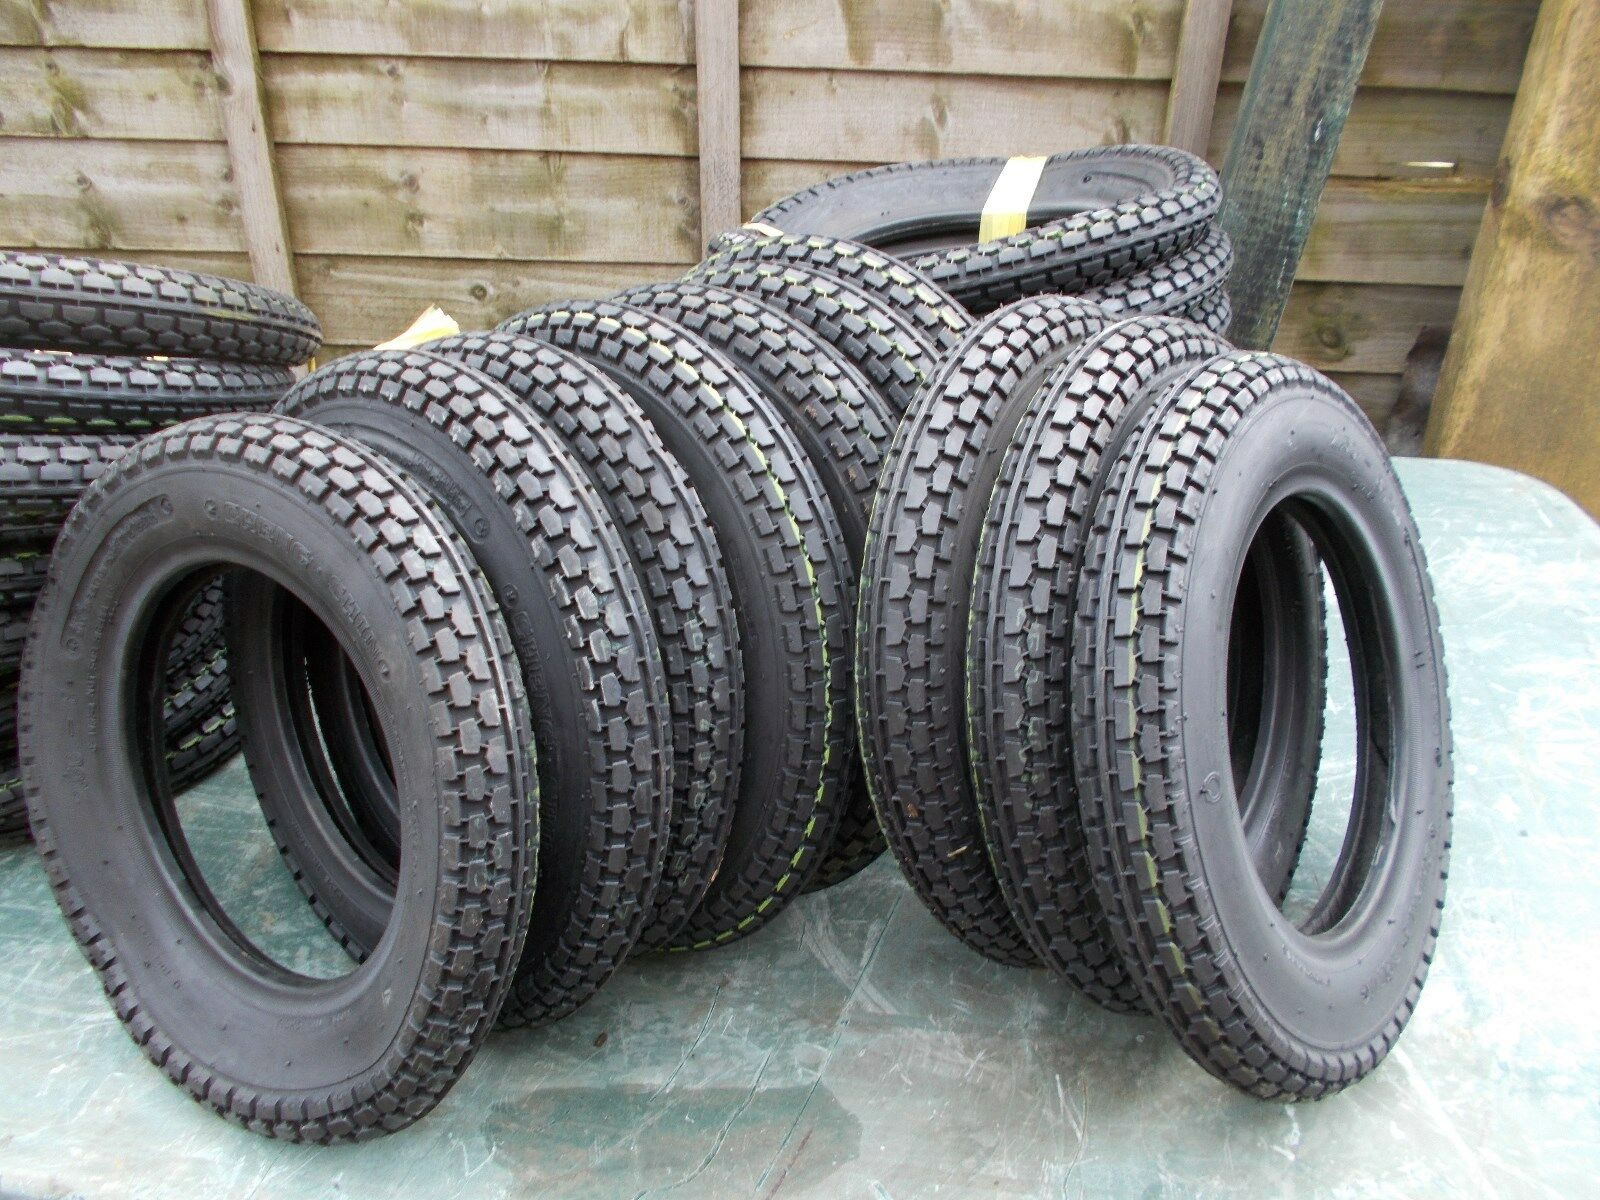 one welbike / brockhouse corgi 250 x 8 tyre Cheng Shin back in stock  new